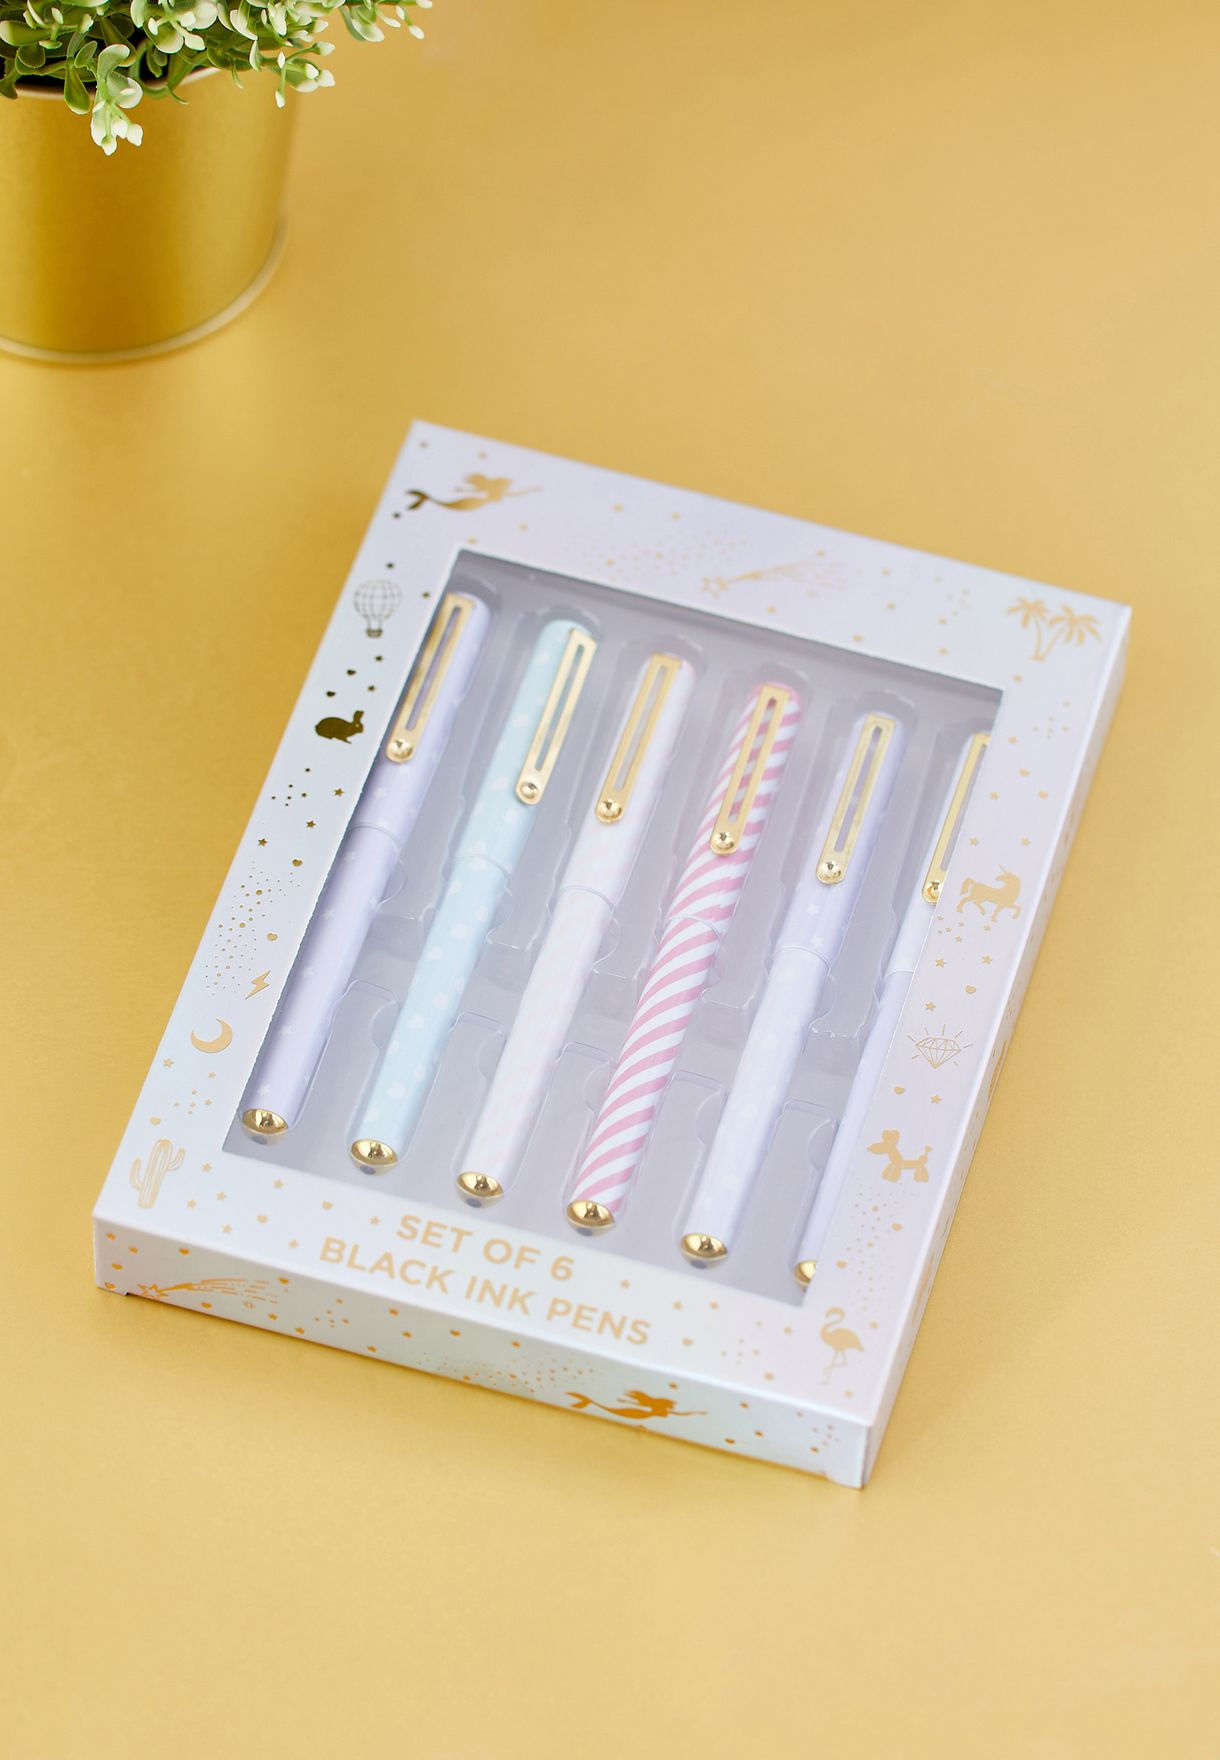 Set of 6 Decorated Pens